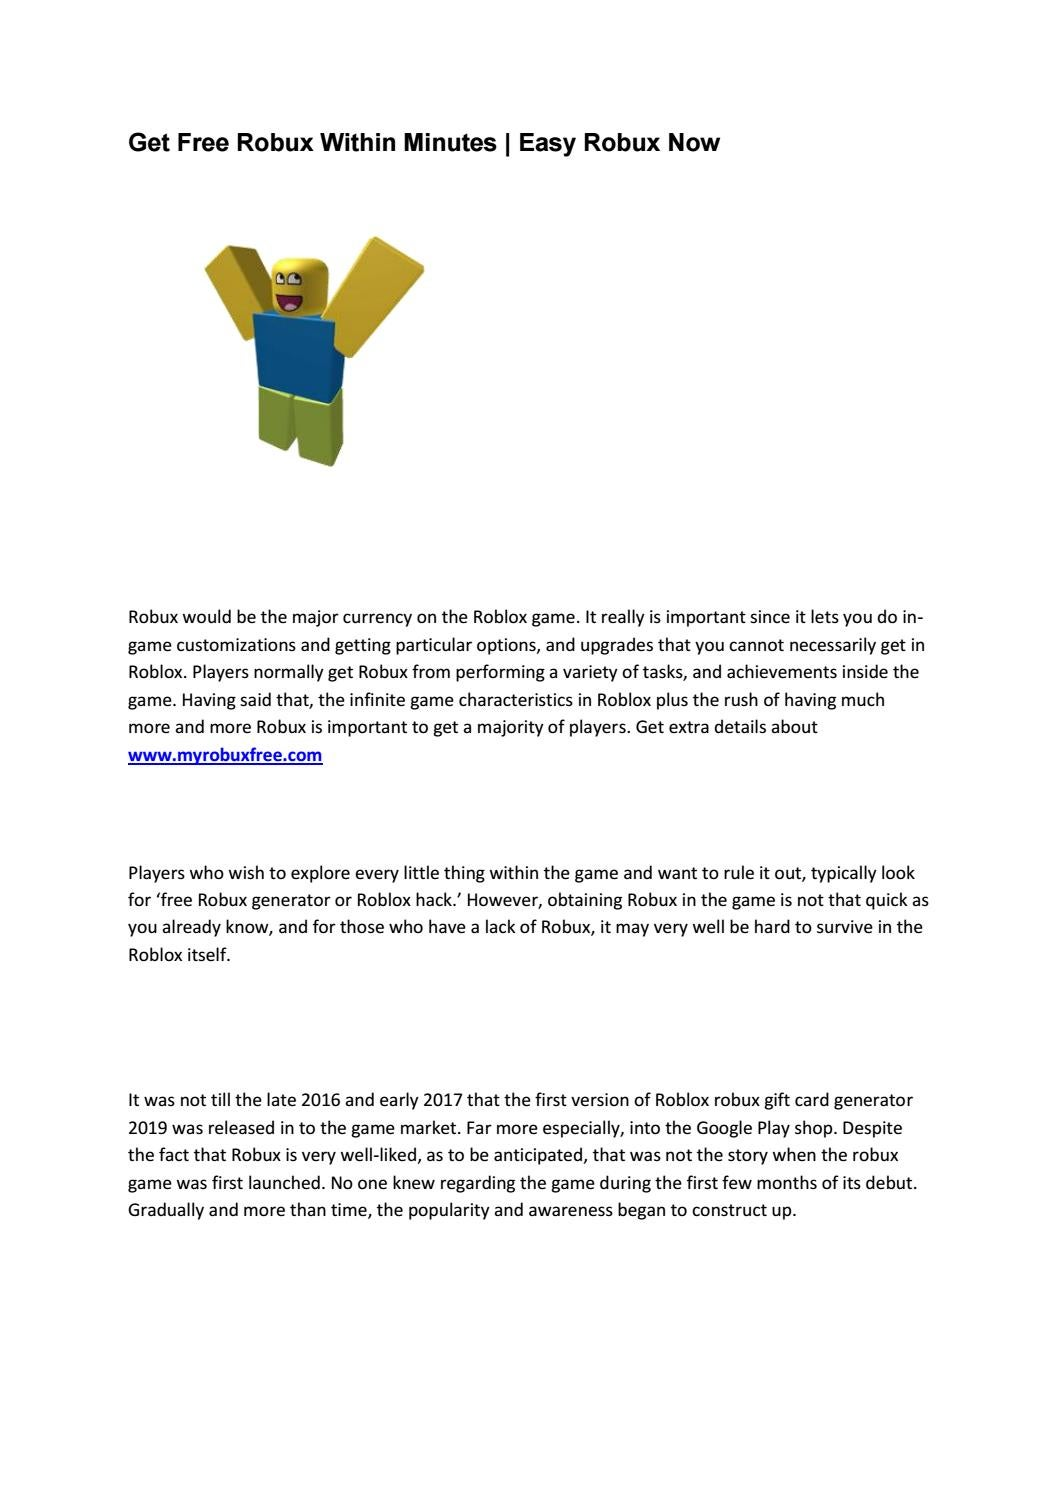 Get Free Robux Within Minutes Easy Robux Now By Leah Fewings Issuu